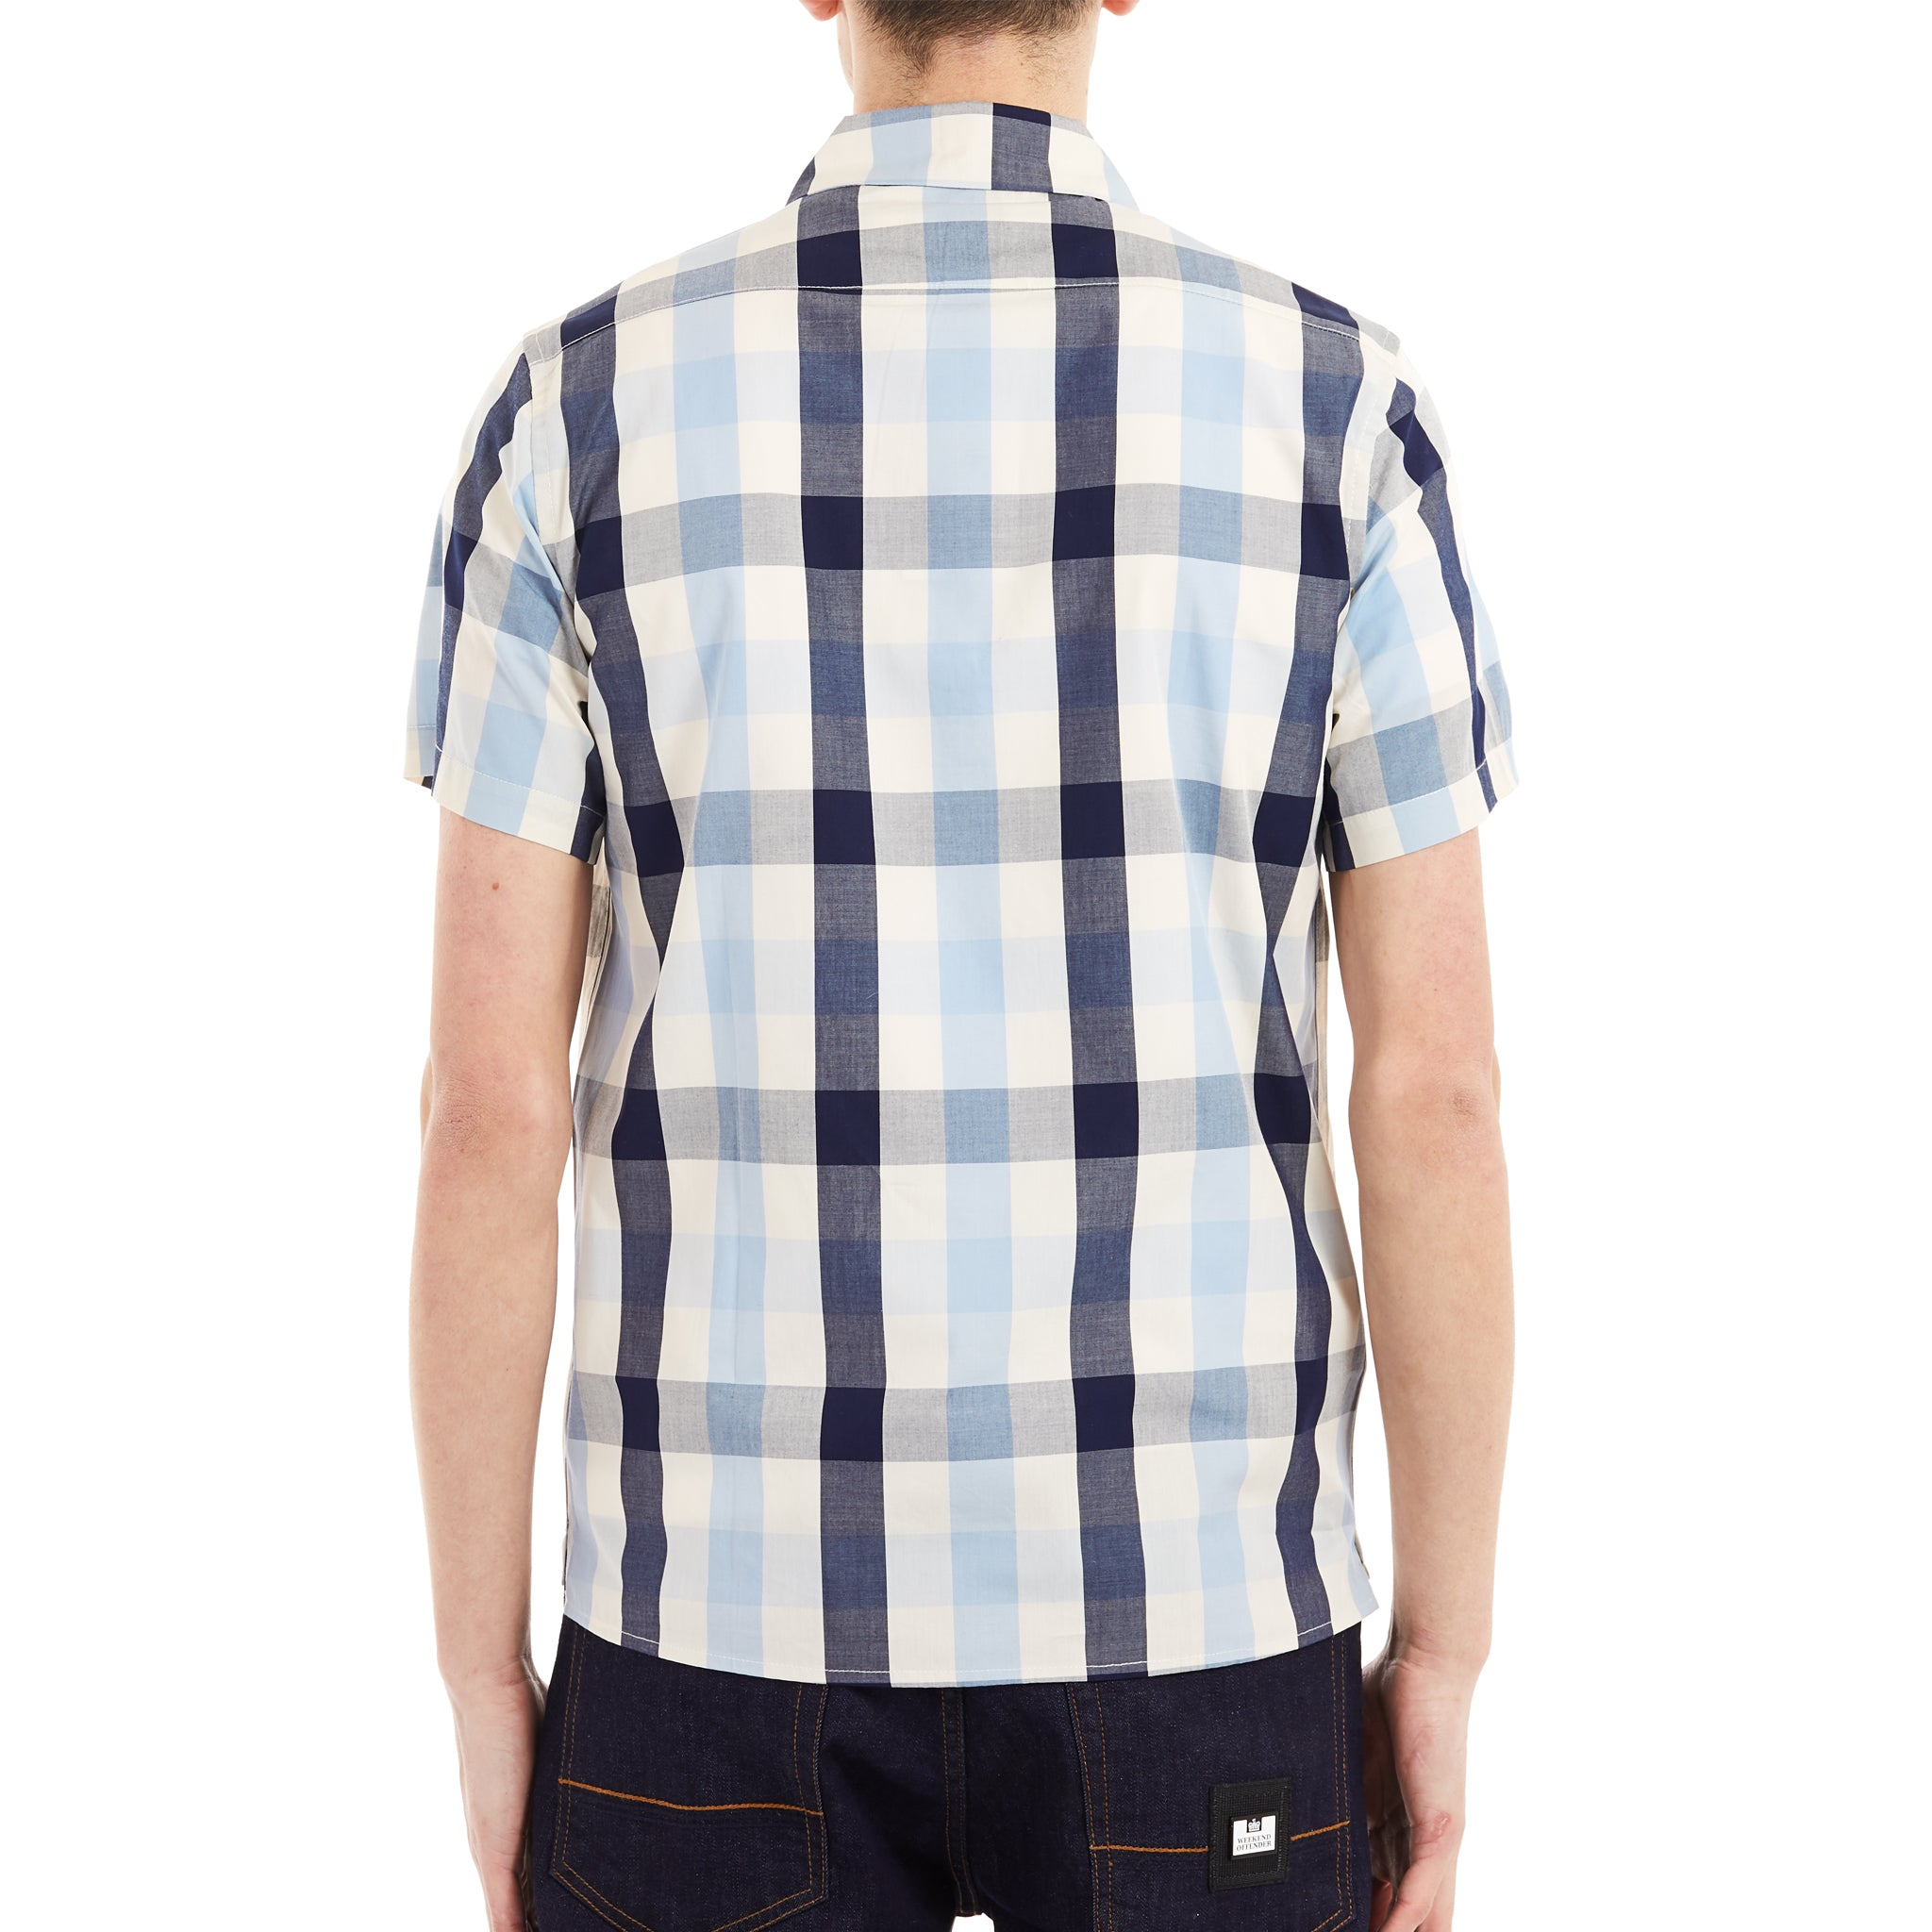 Rienzo Cream/Navy Check